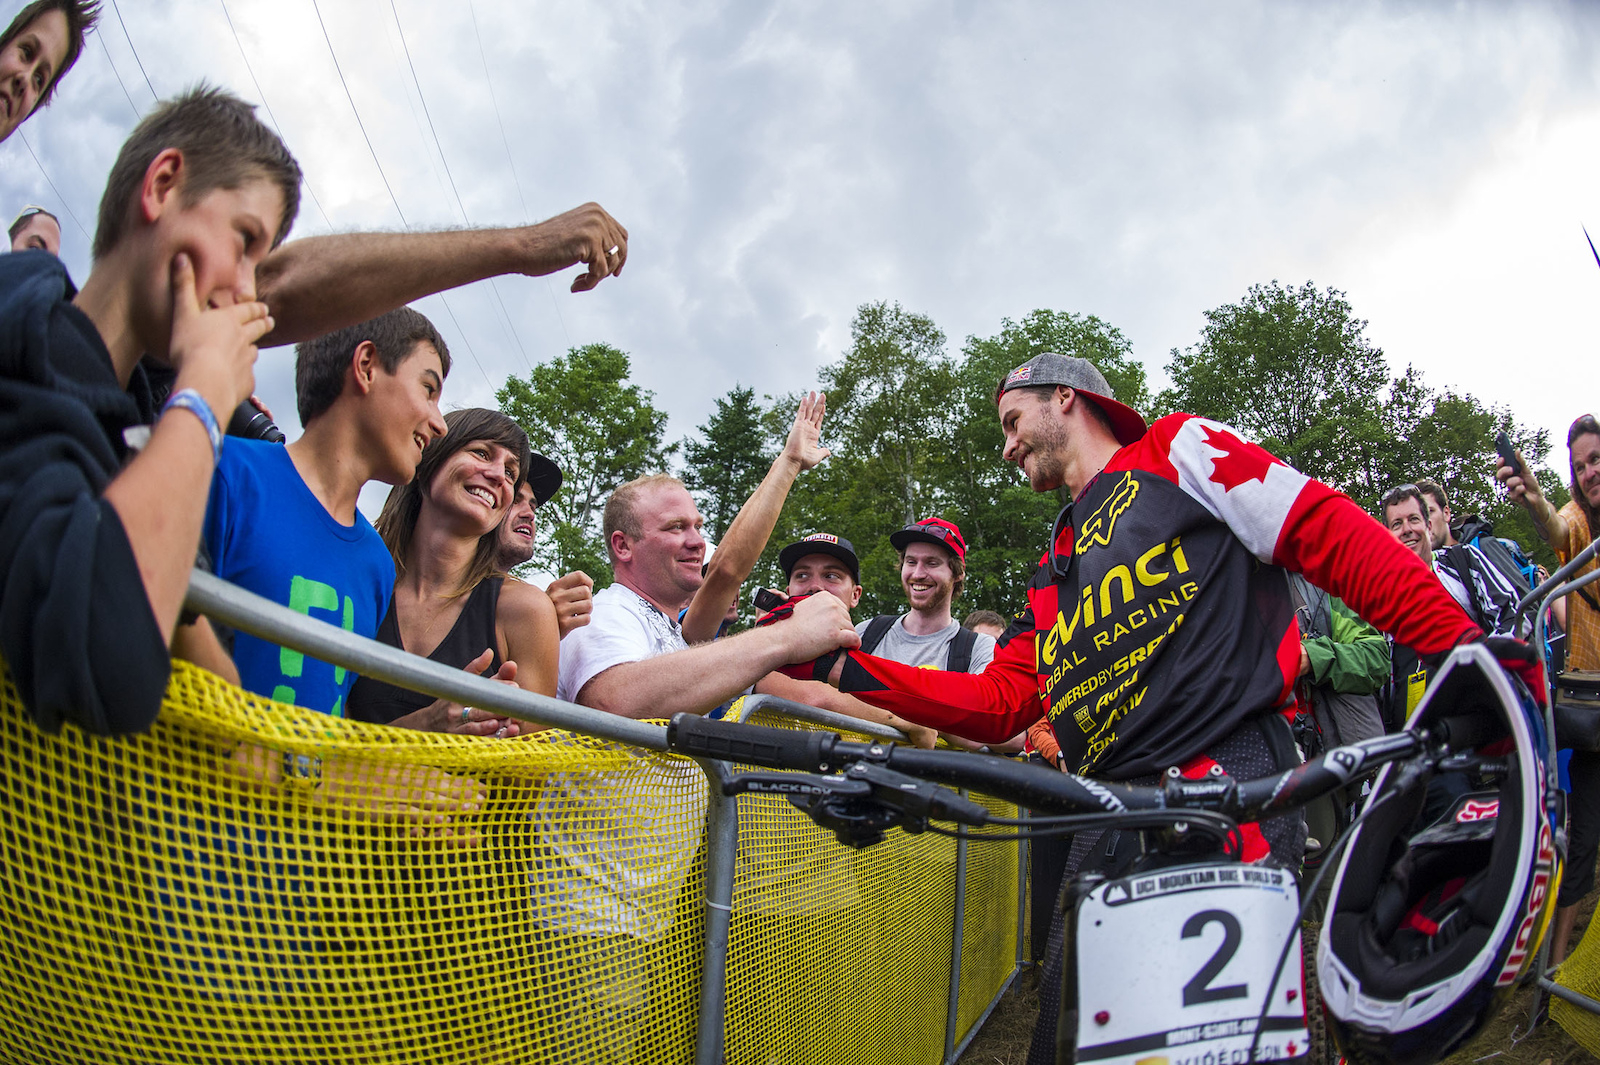 Steve at the 2013 UCI MTB World Cup DH race at Mt St Anne in Quebec moments after taking the win.